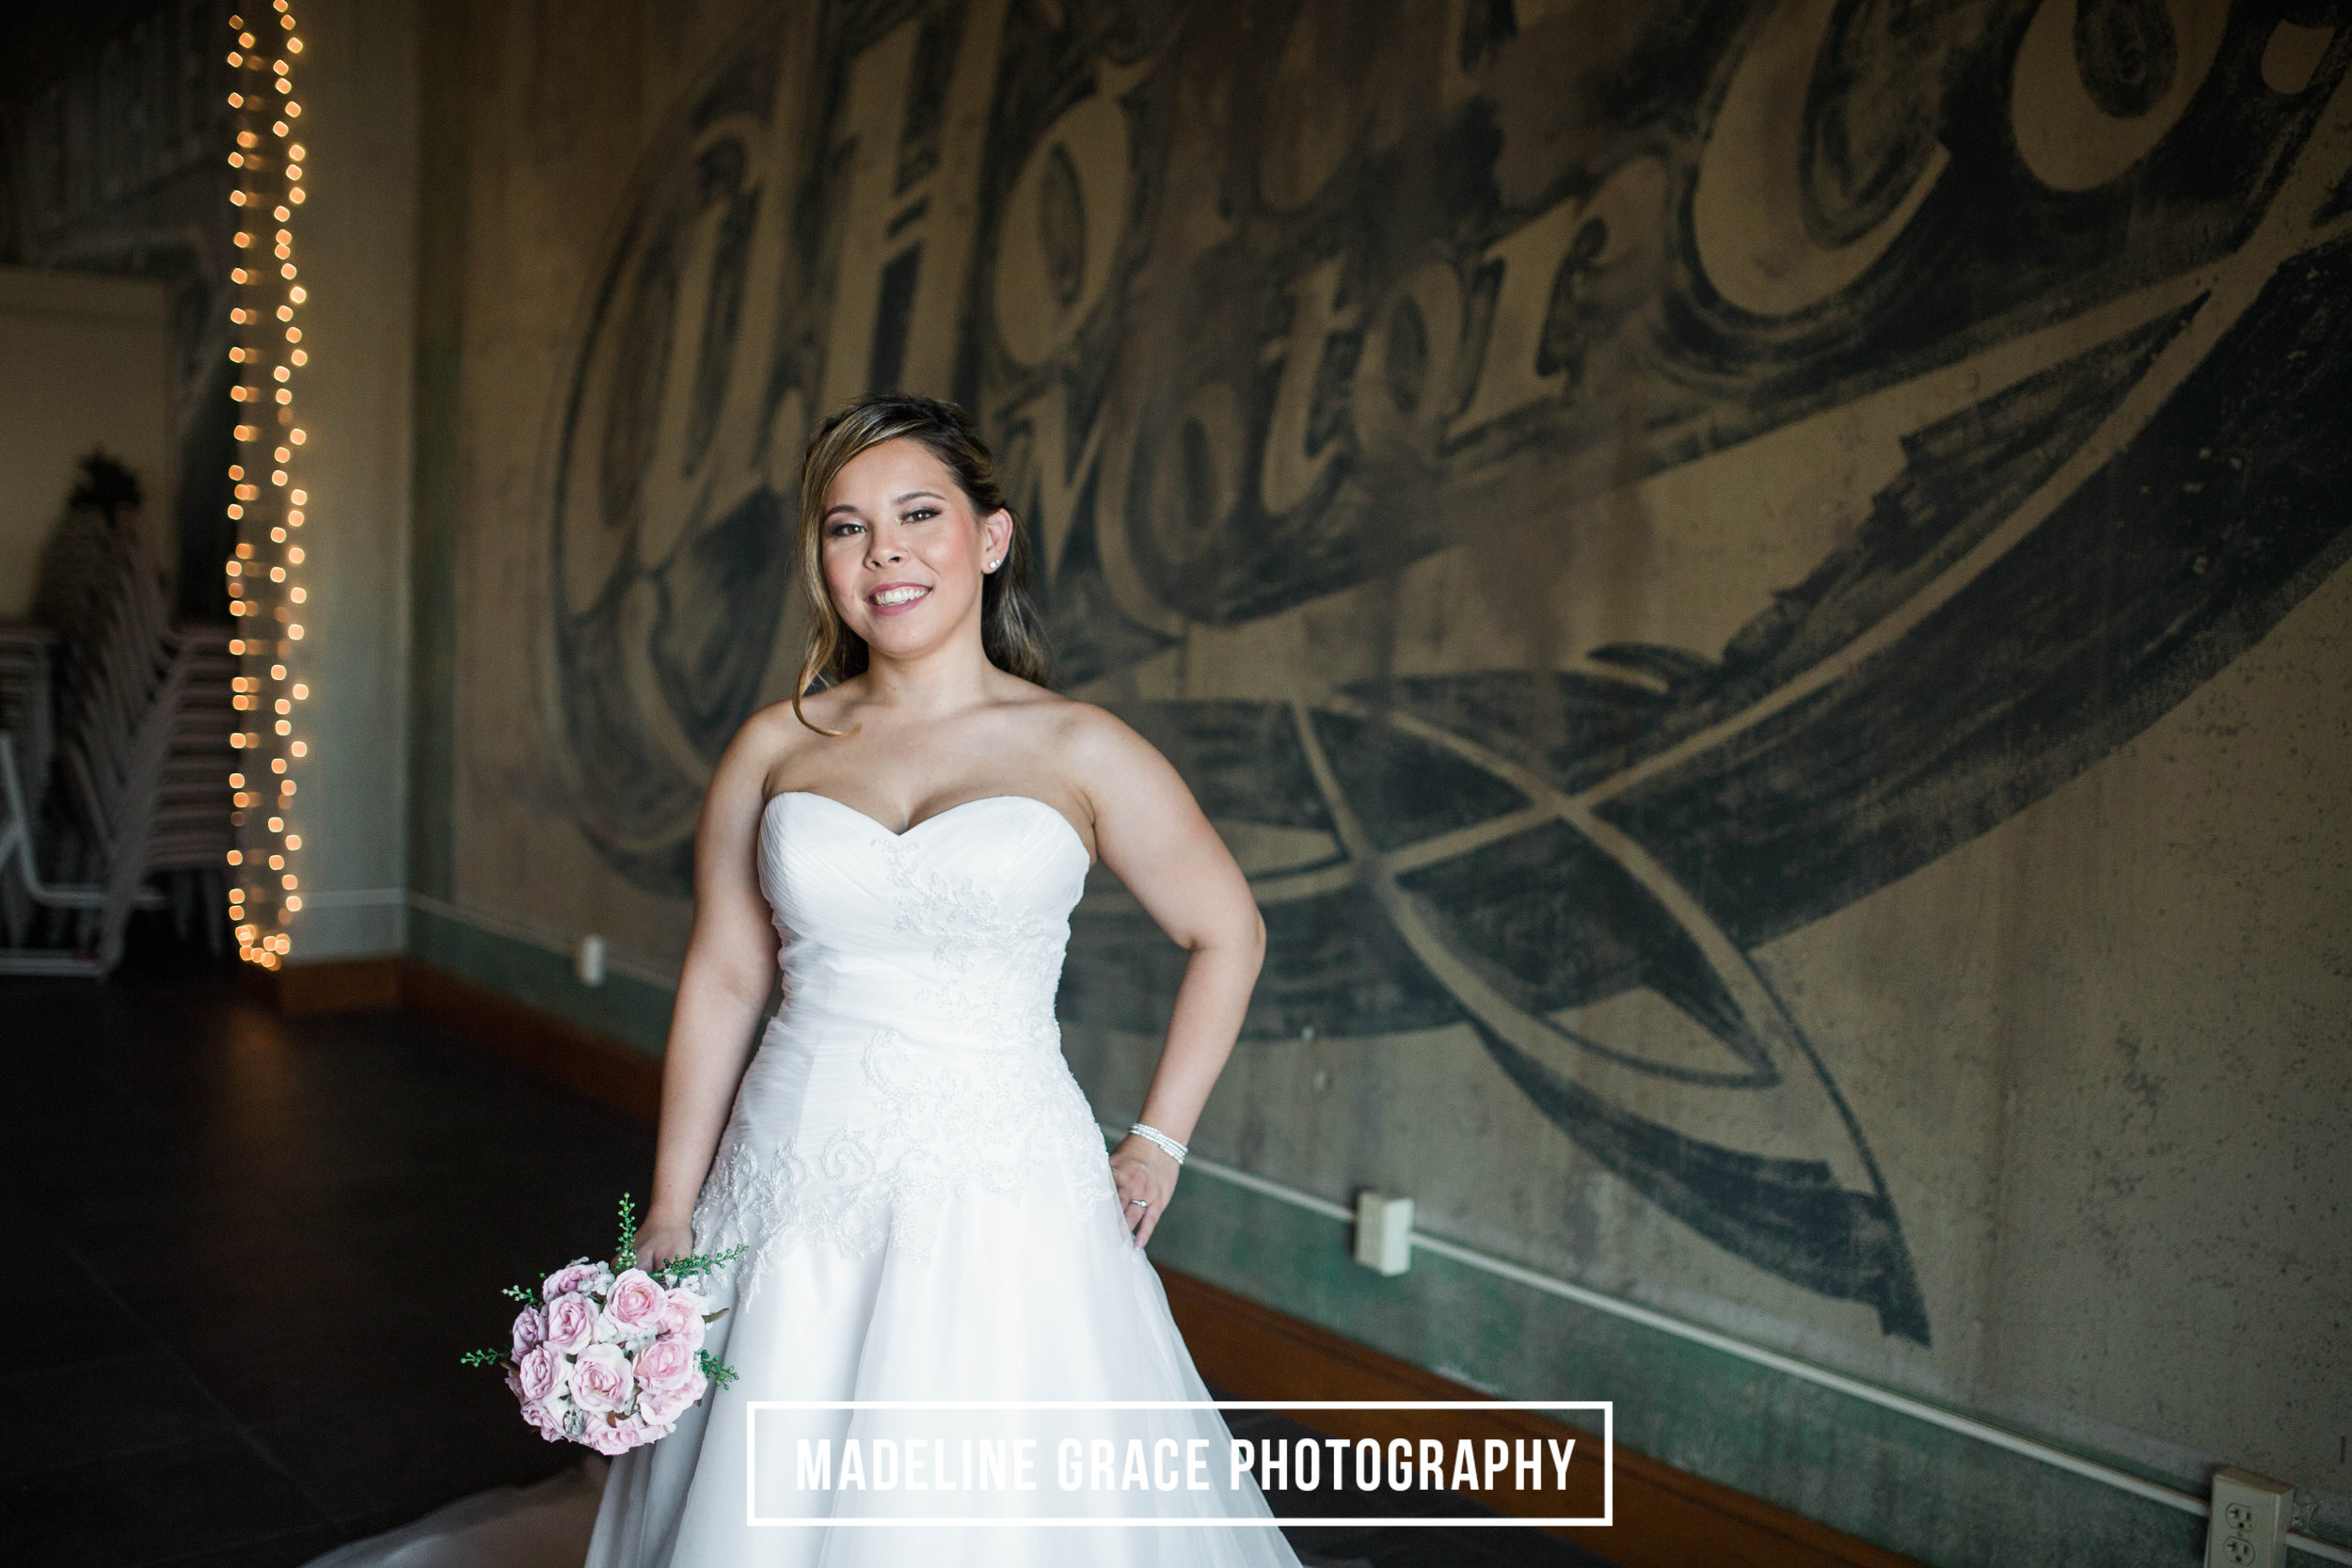 MGP-Sarah-Bridals-57 copy.jpg